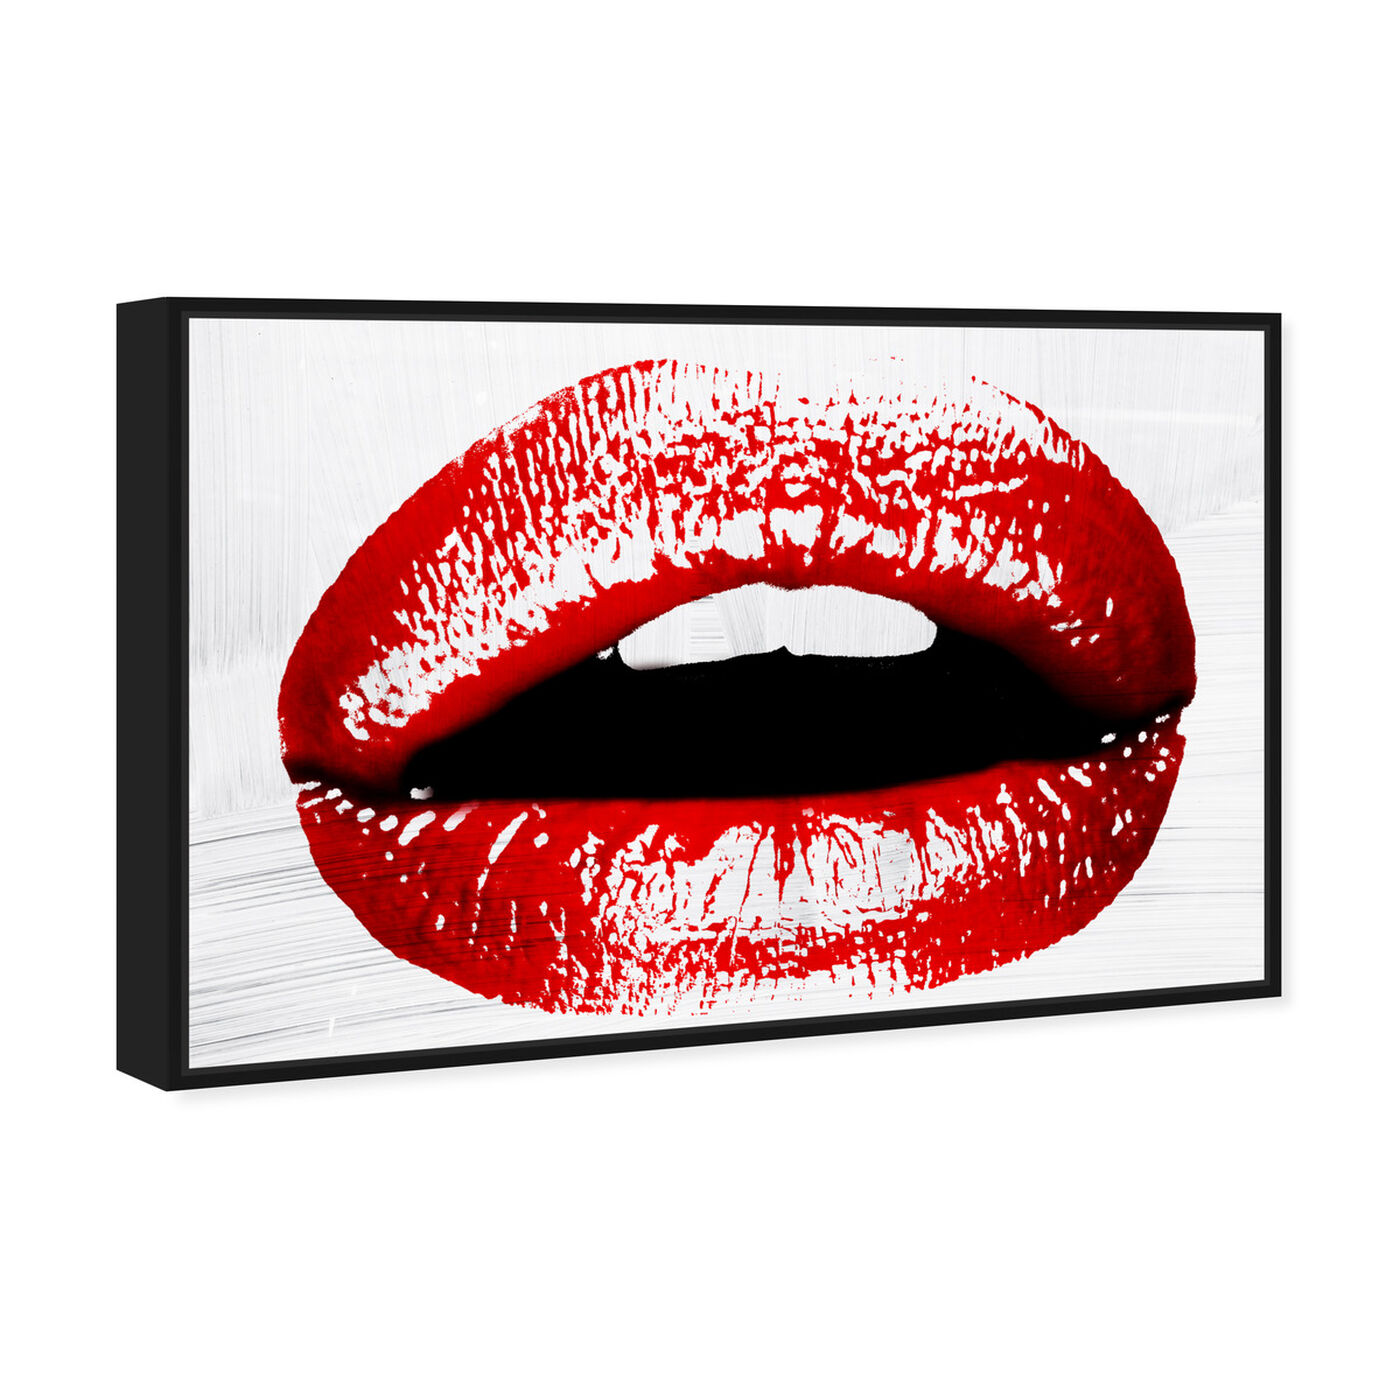 Angled view of Statement Lips featuring fashion and glam and lips art.